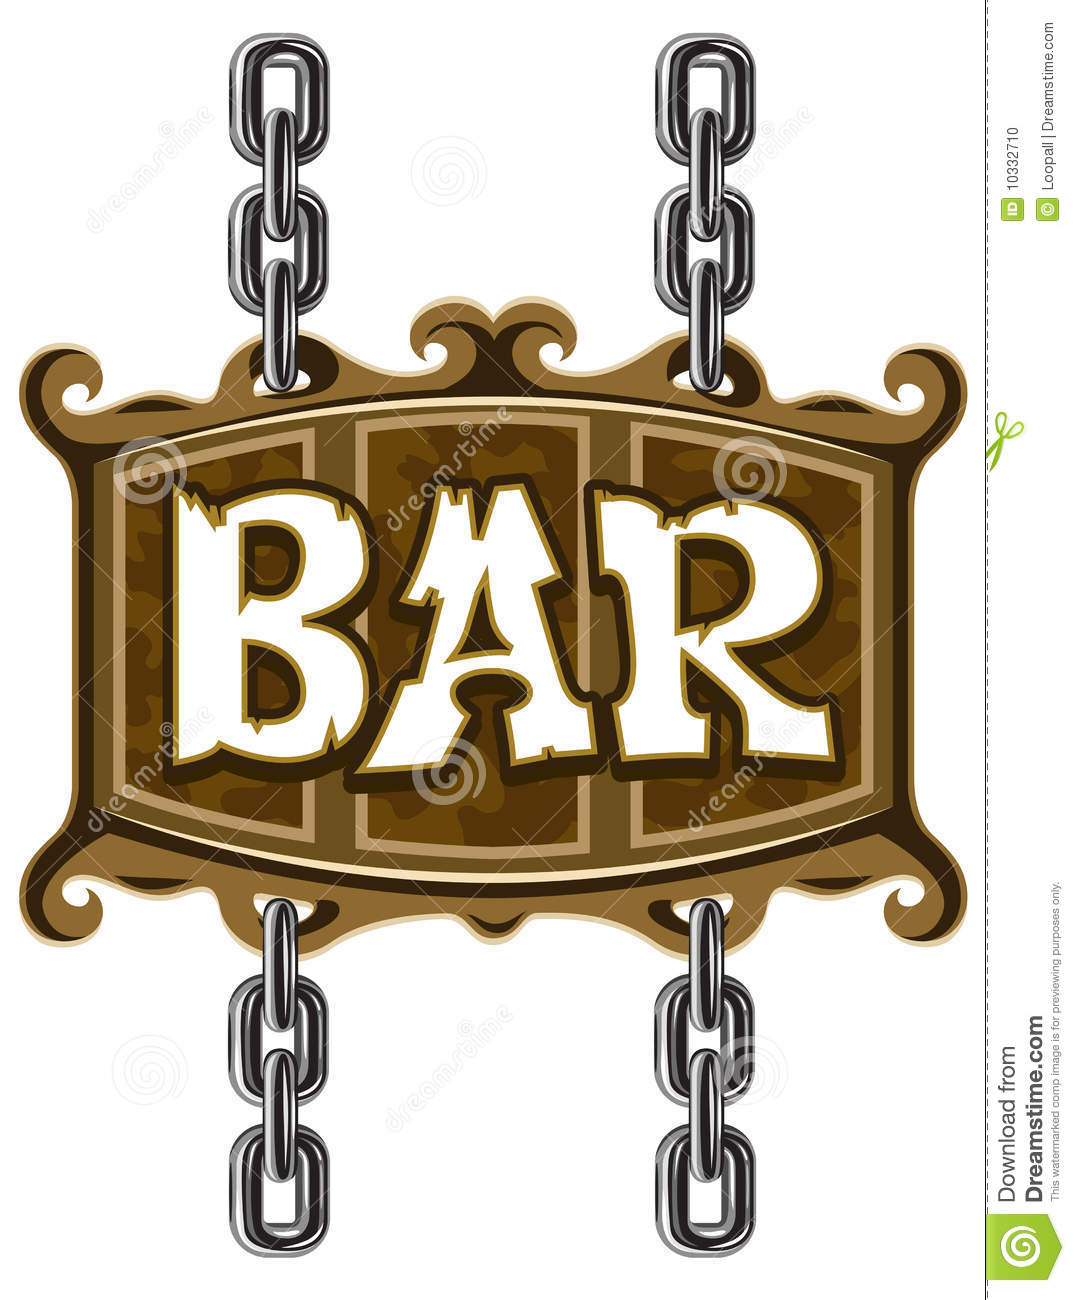 Wooden Sign For Beer Pub Or Bar Stock Illustration.